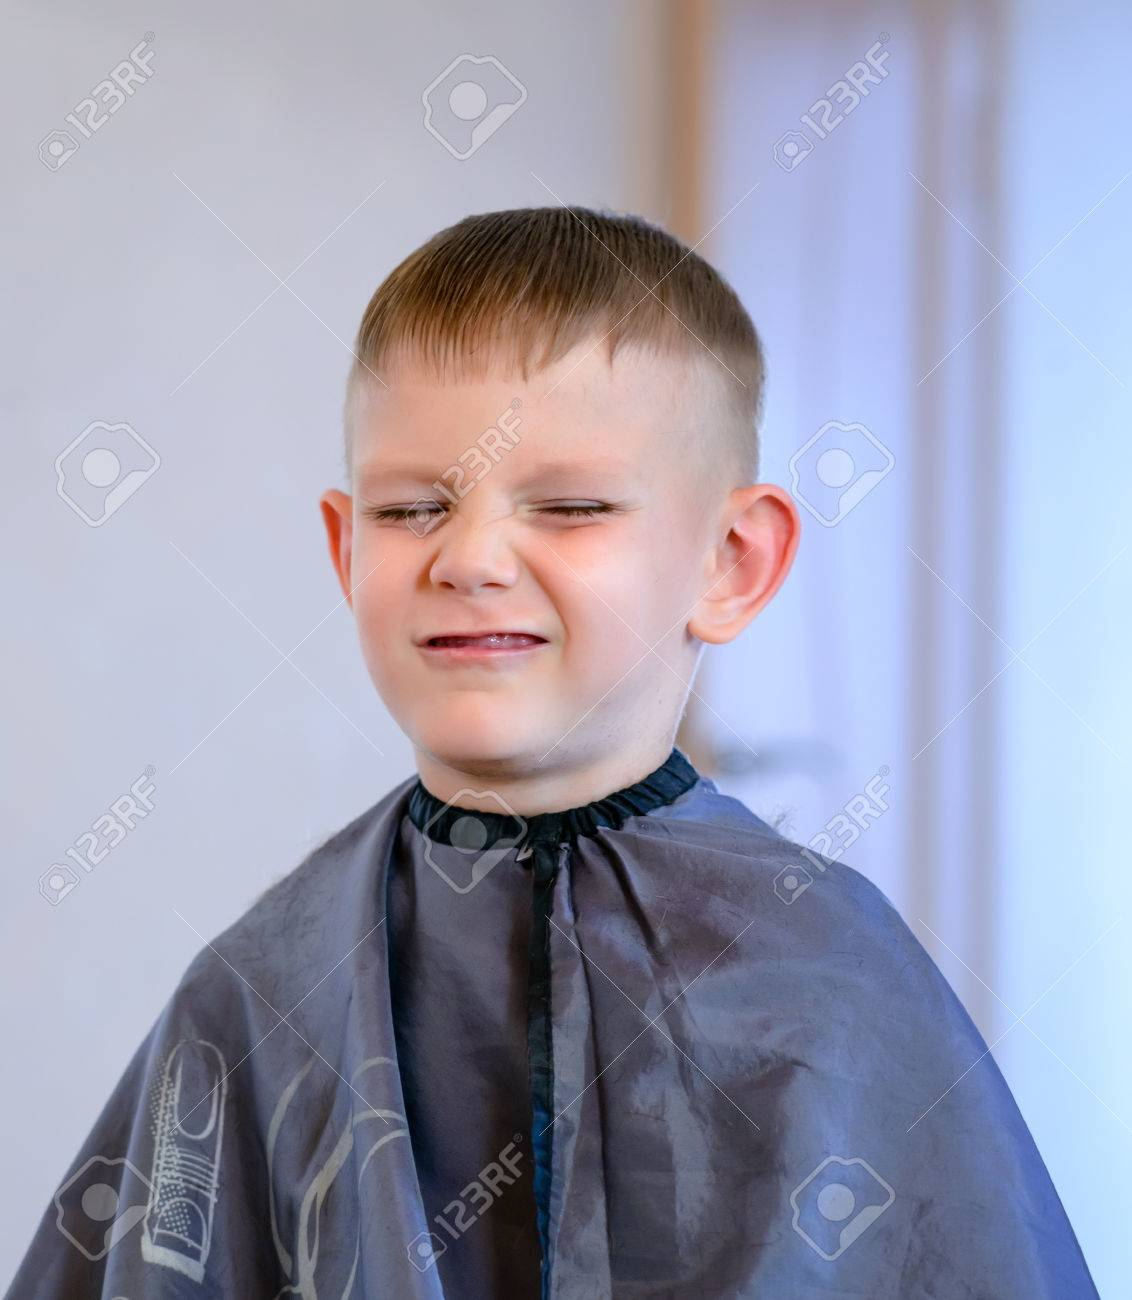 Young Boy Grimacing With Eyes Closed While Getting Hair Cut